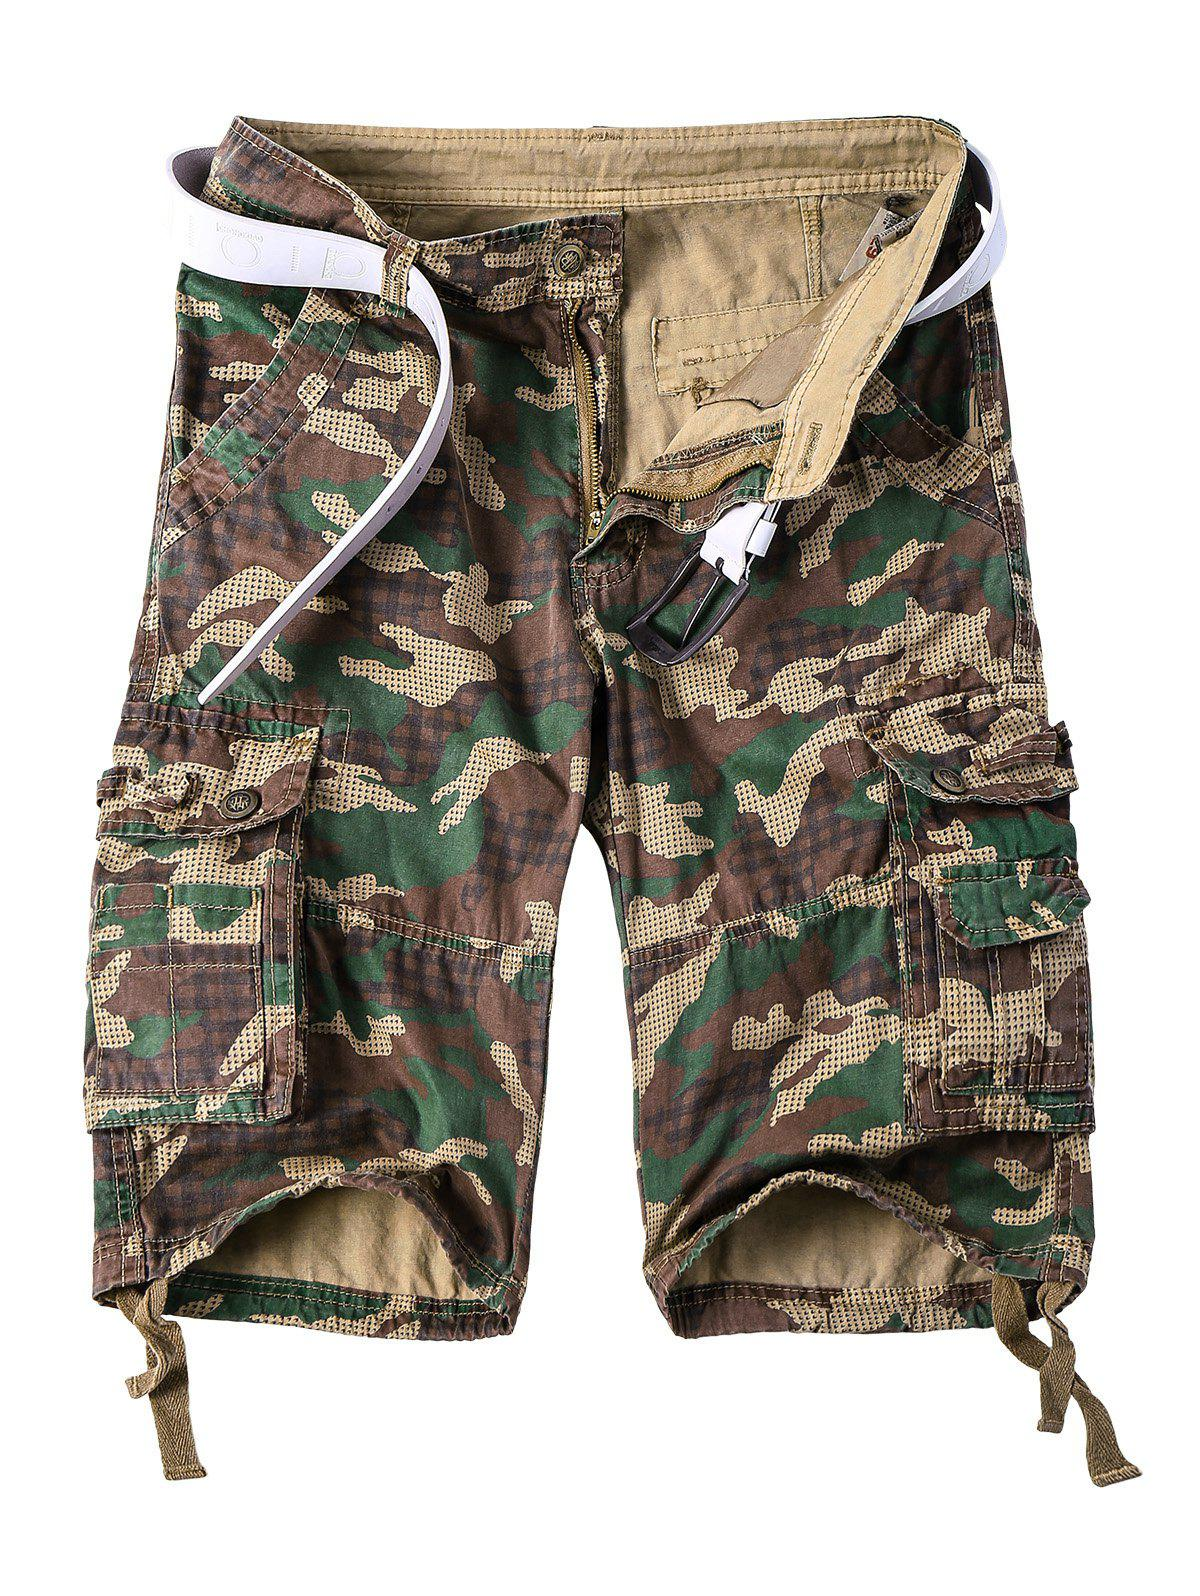 Straight Leg Multi-Pocket Lacing Hem Zipper Fly Men's Camo Cargo Shorts - CAMOUFLAGE 3XL